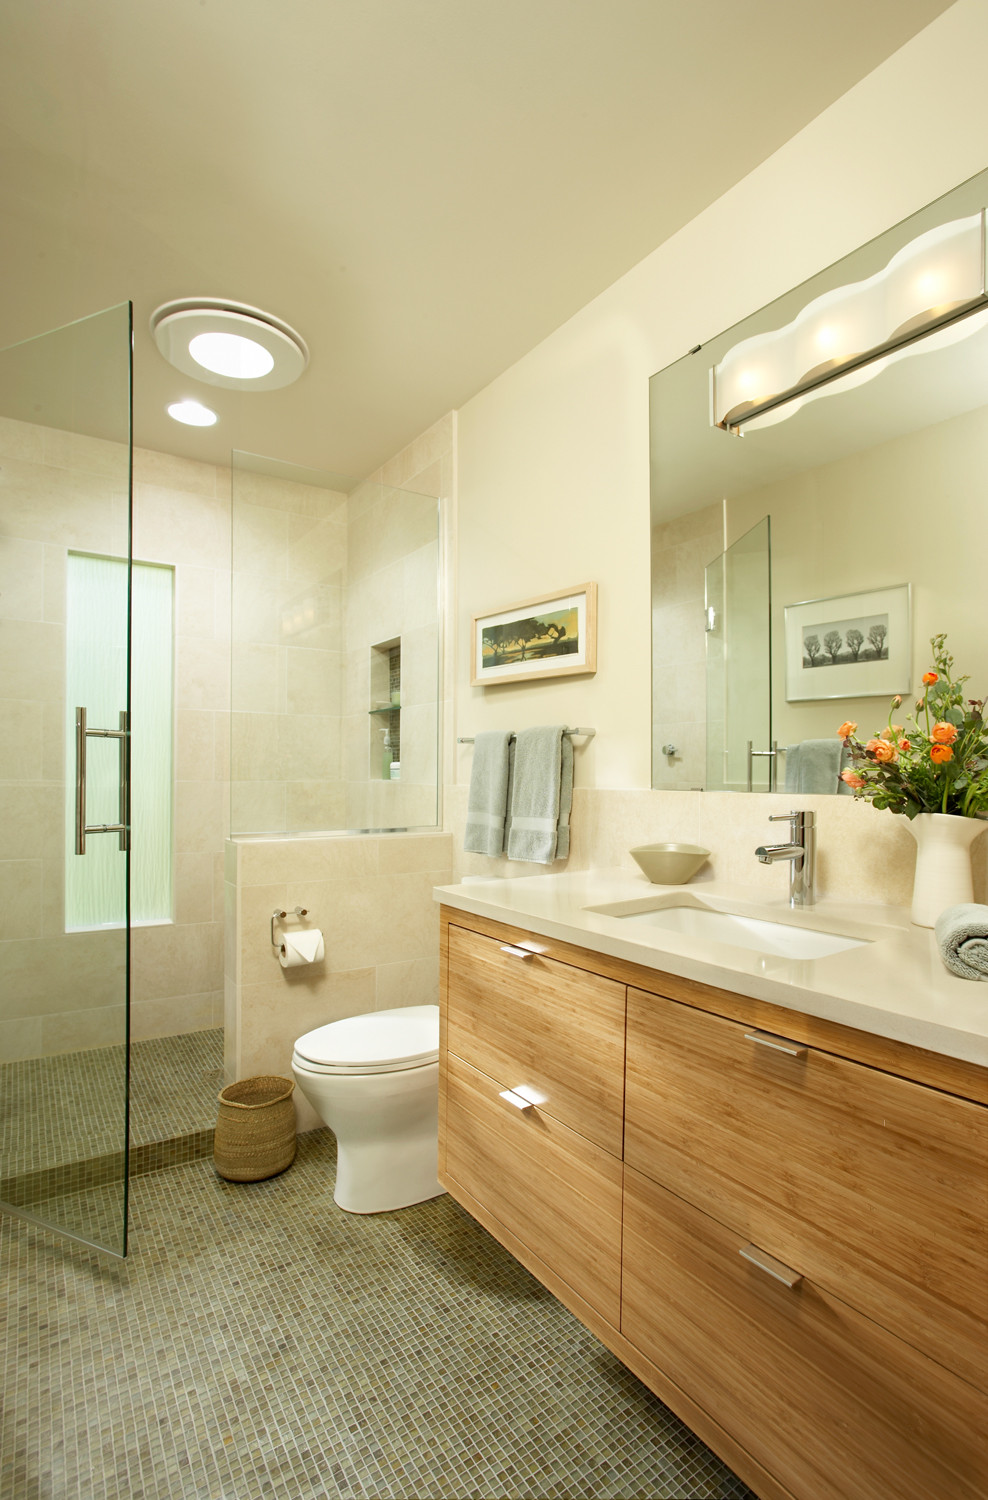 matching faucets with bathroom - design ideas